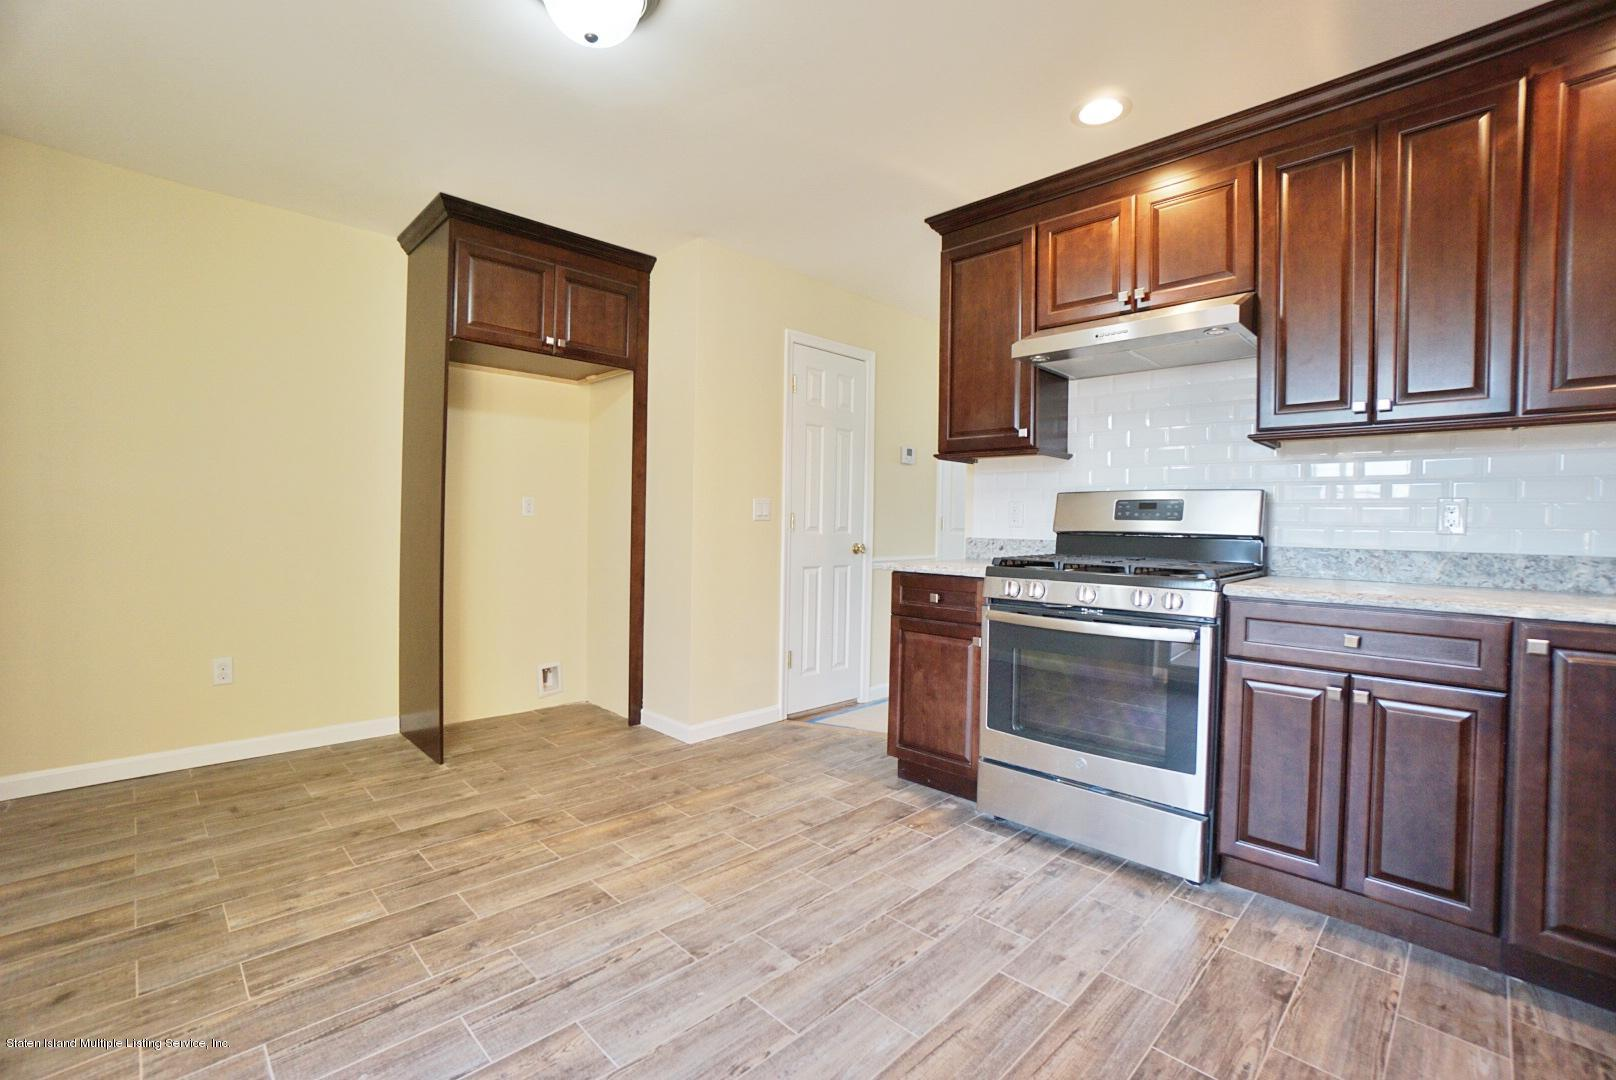 Single Family - Attached 34 Bamberger Lane  Staten Island, NY 10312, MLS-1135521-8